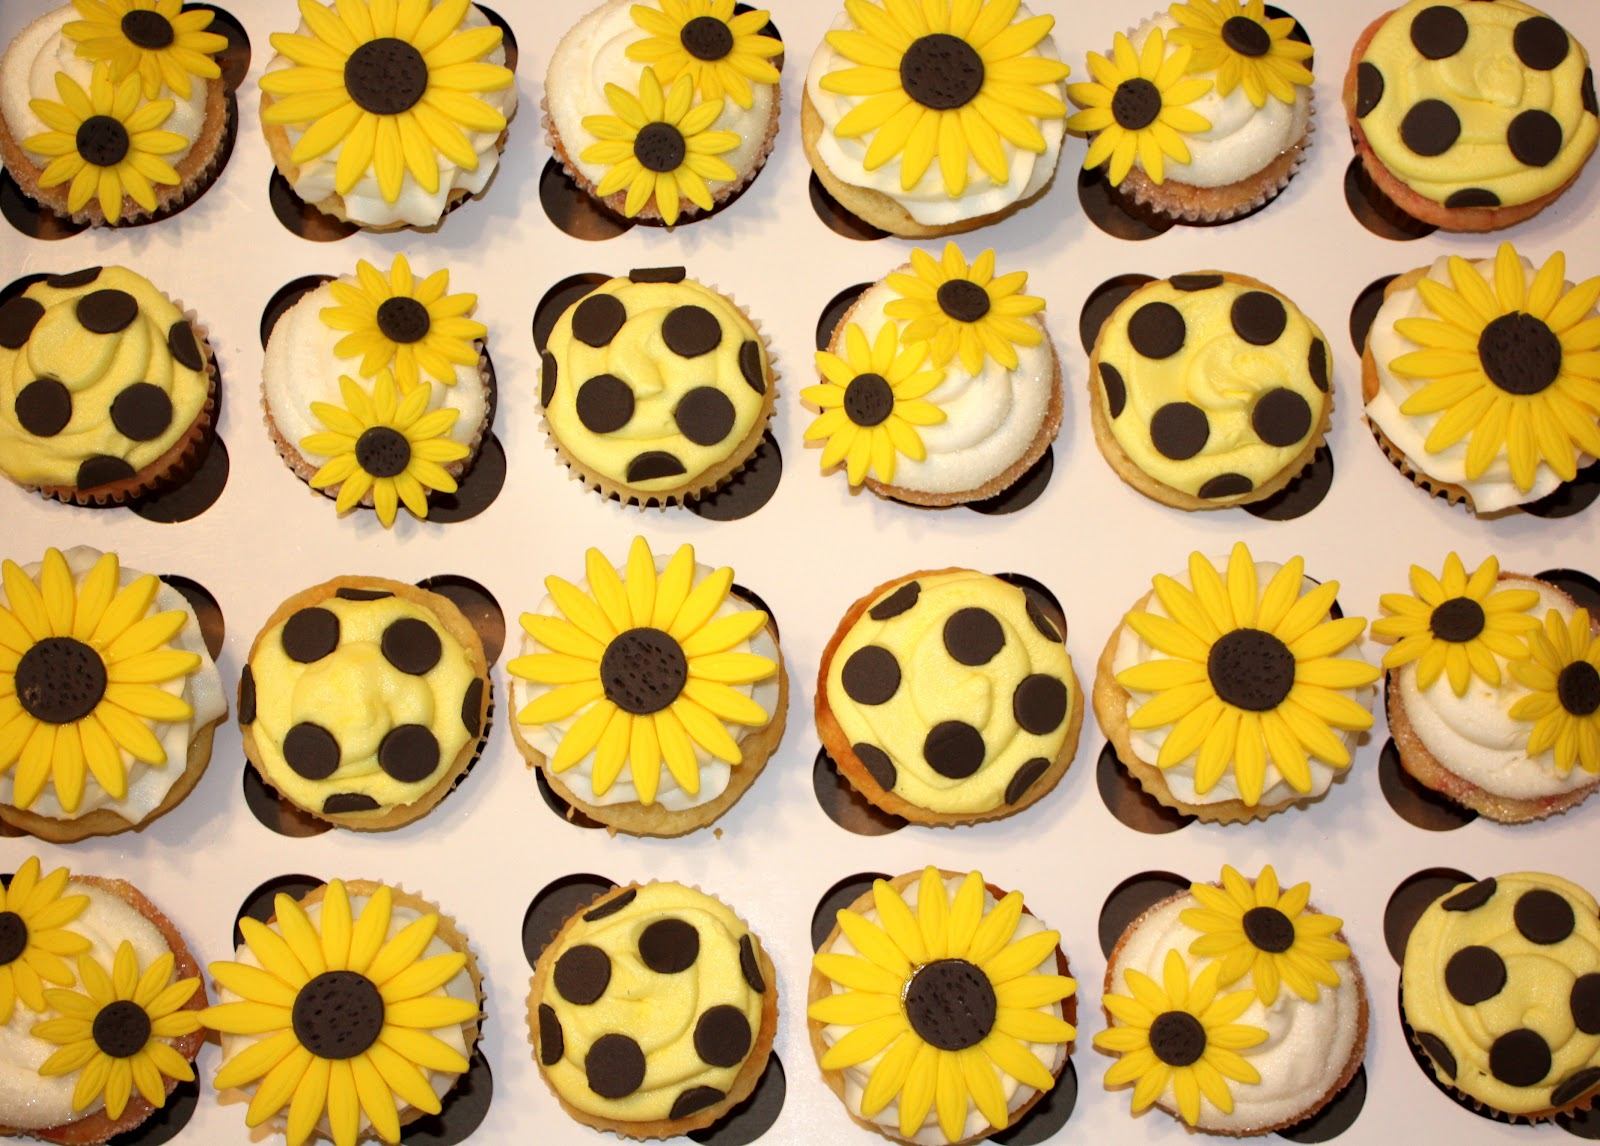 Bright Yellow Sunflowers, And Brown Polka Dots Make A Perfect Combo For A  Cupcake Tower In The Making!